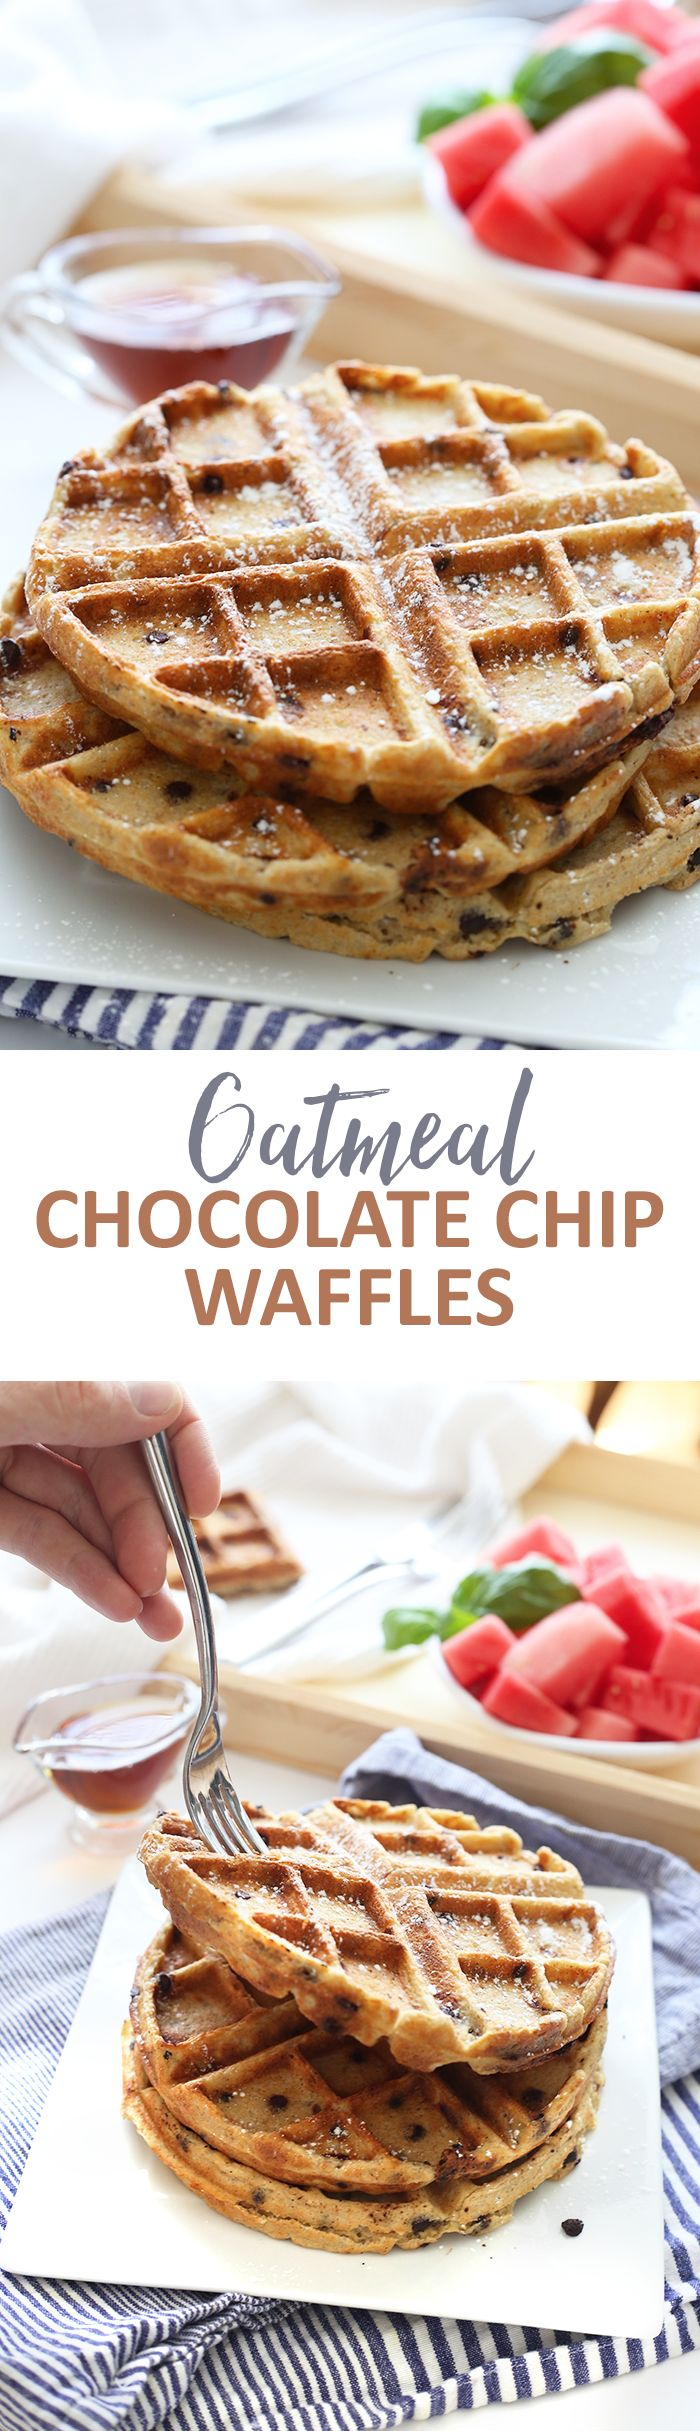 Oatmeal Chocolate Chip Waffles - The Healthy Maven